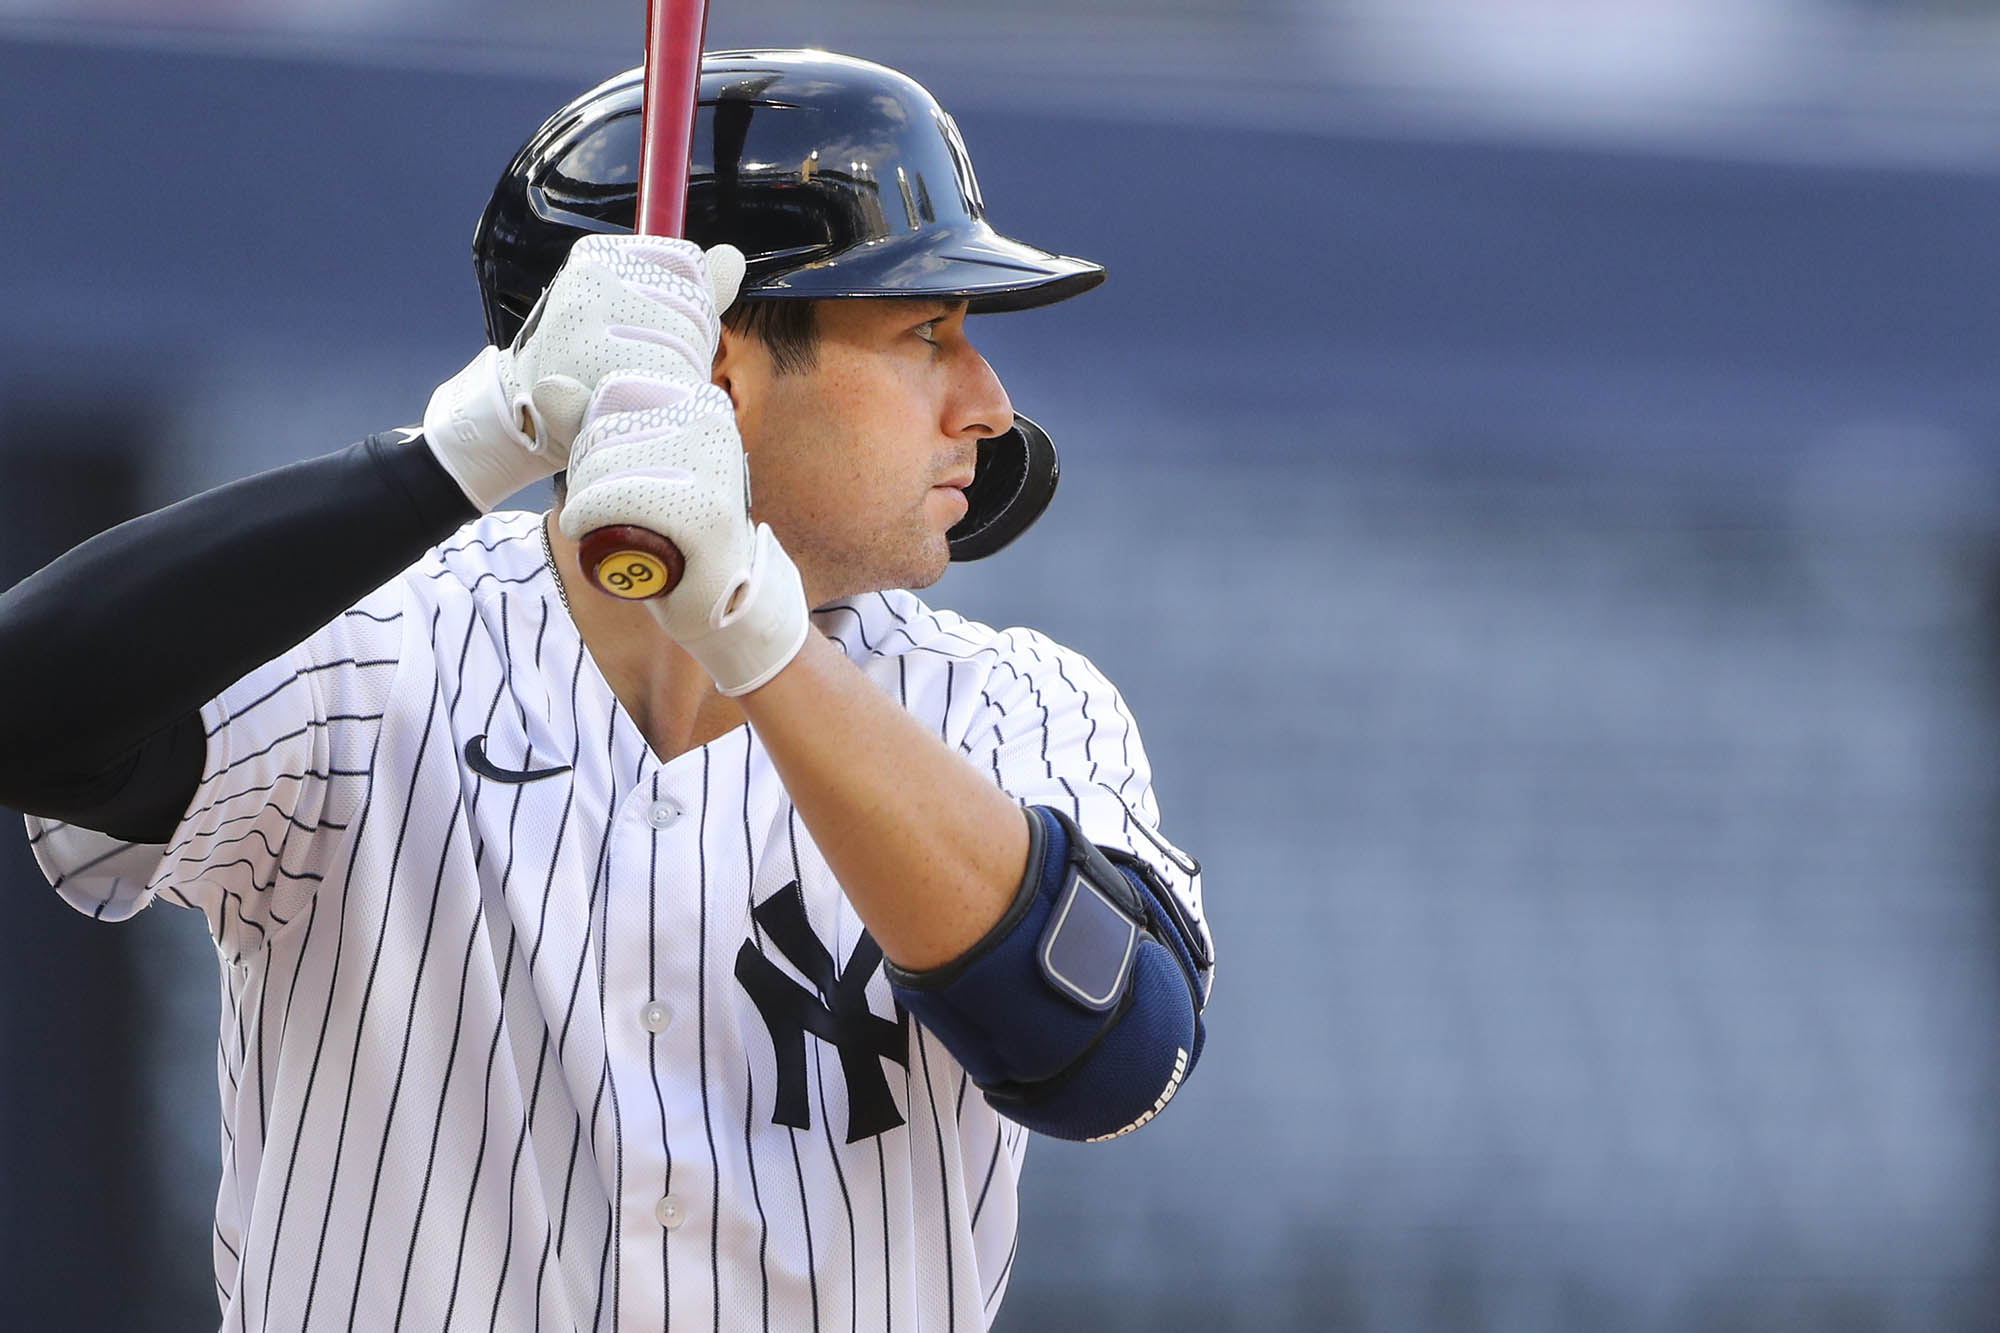 Kyle Higashioka responds after fans swear to tattoo Yankees catcher 'on my a-'